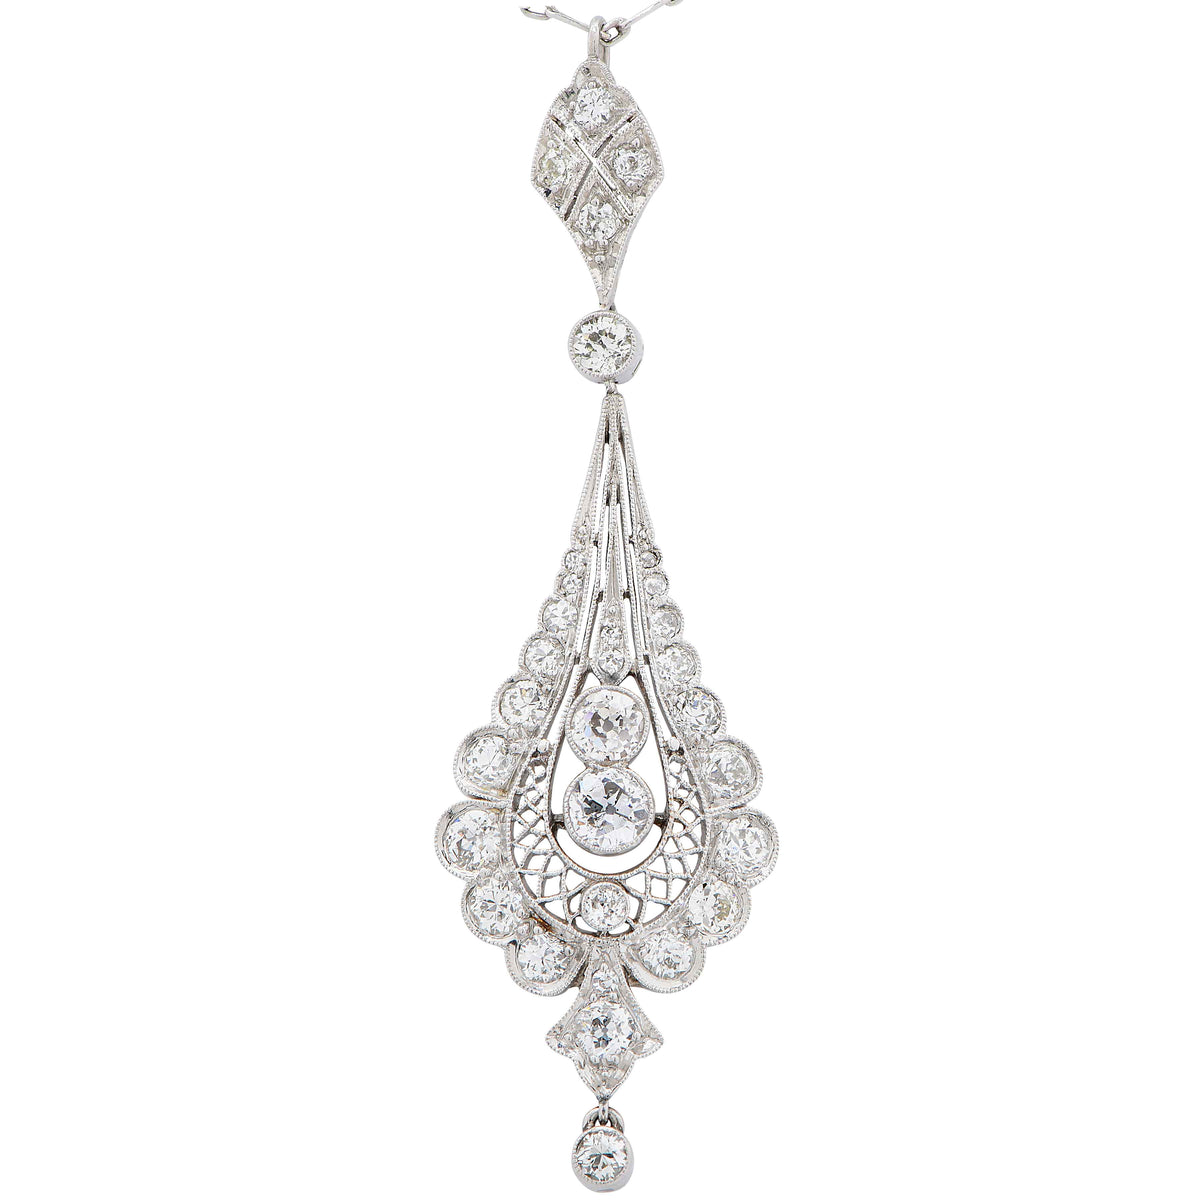 Edwardian 2 Carat Diamond Platinum Pendant Necklace